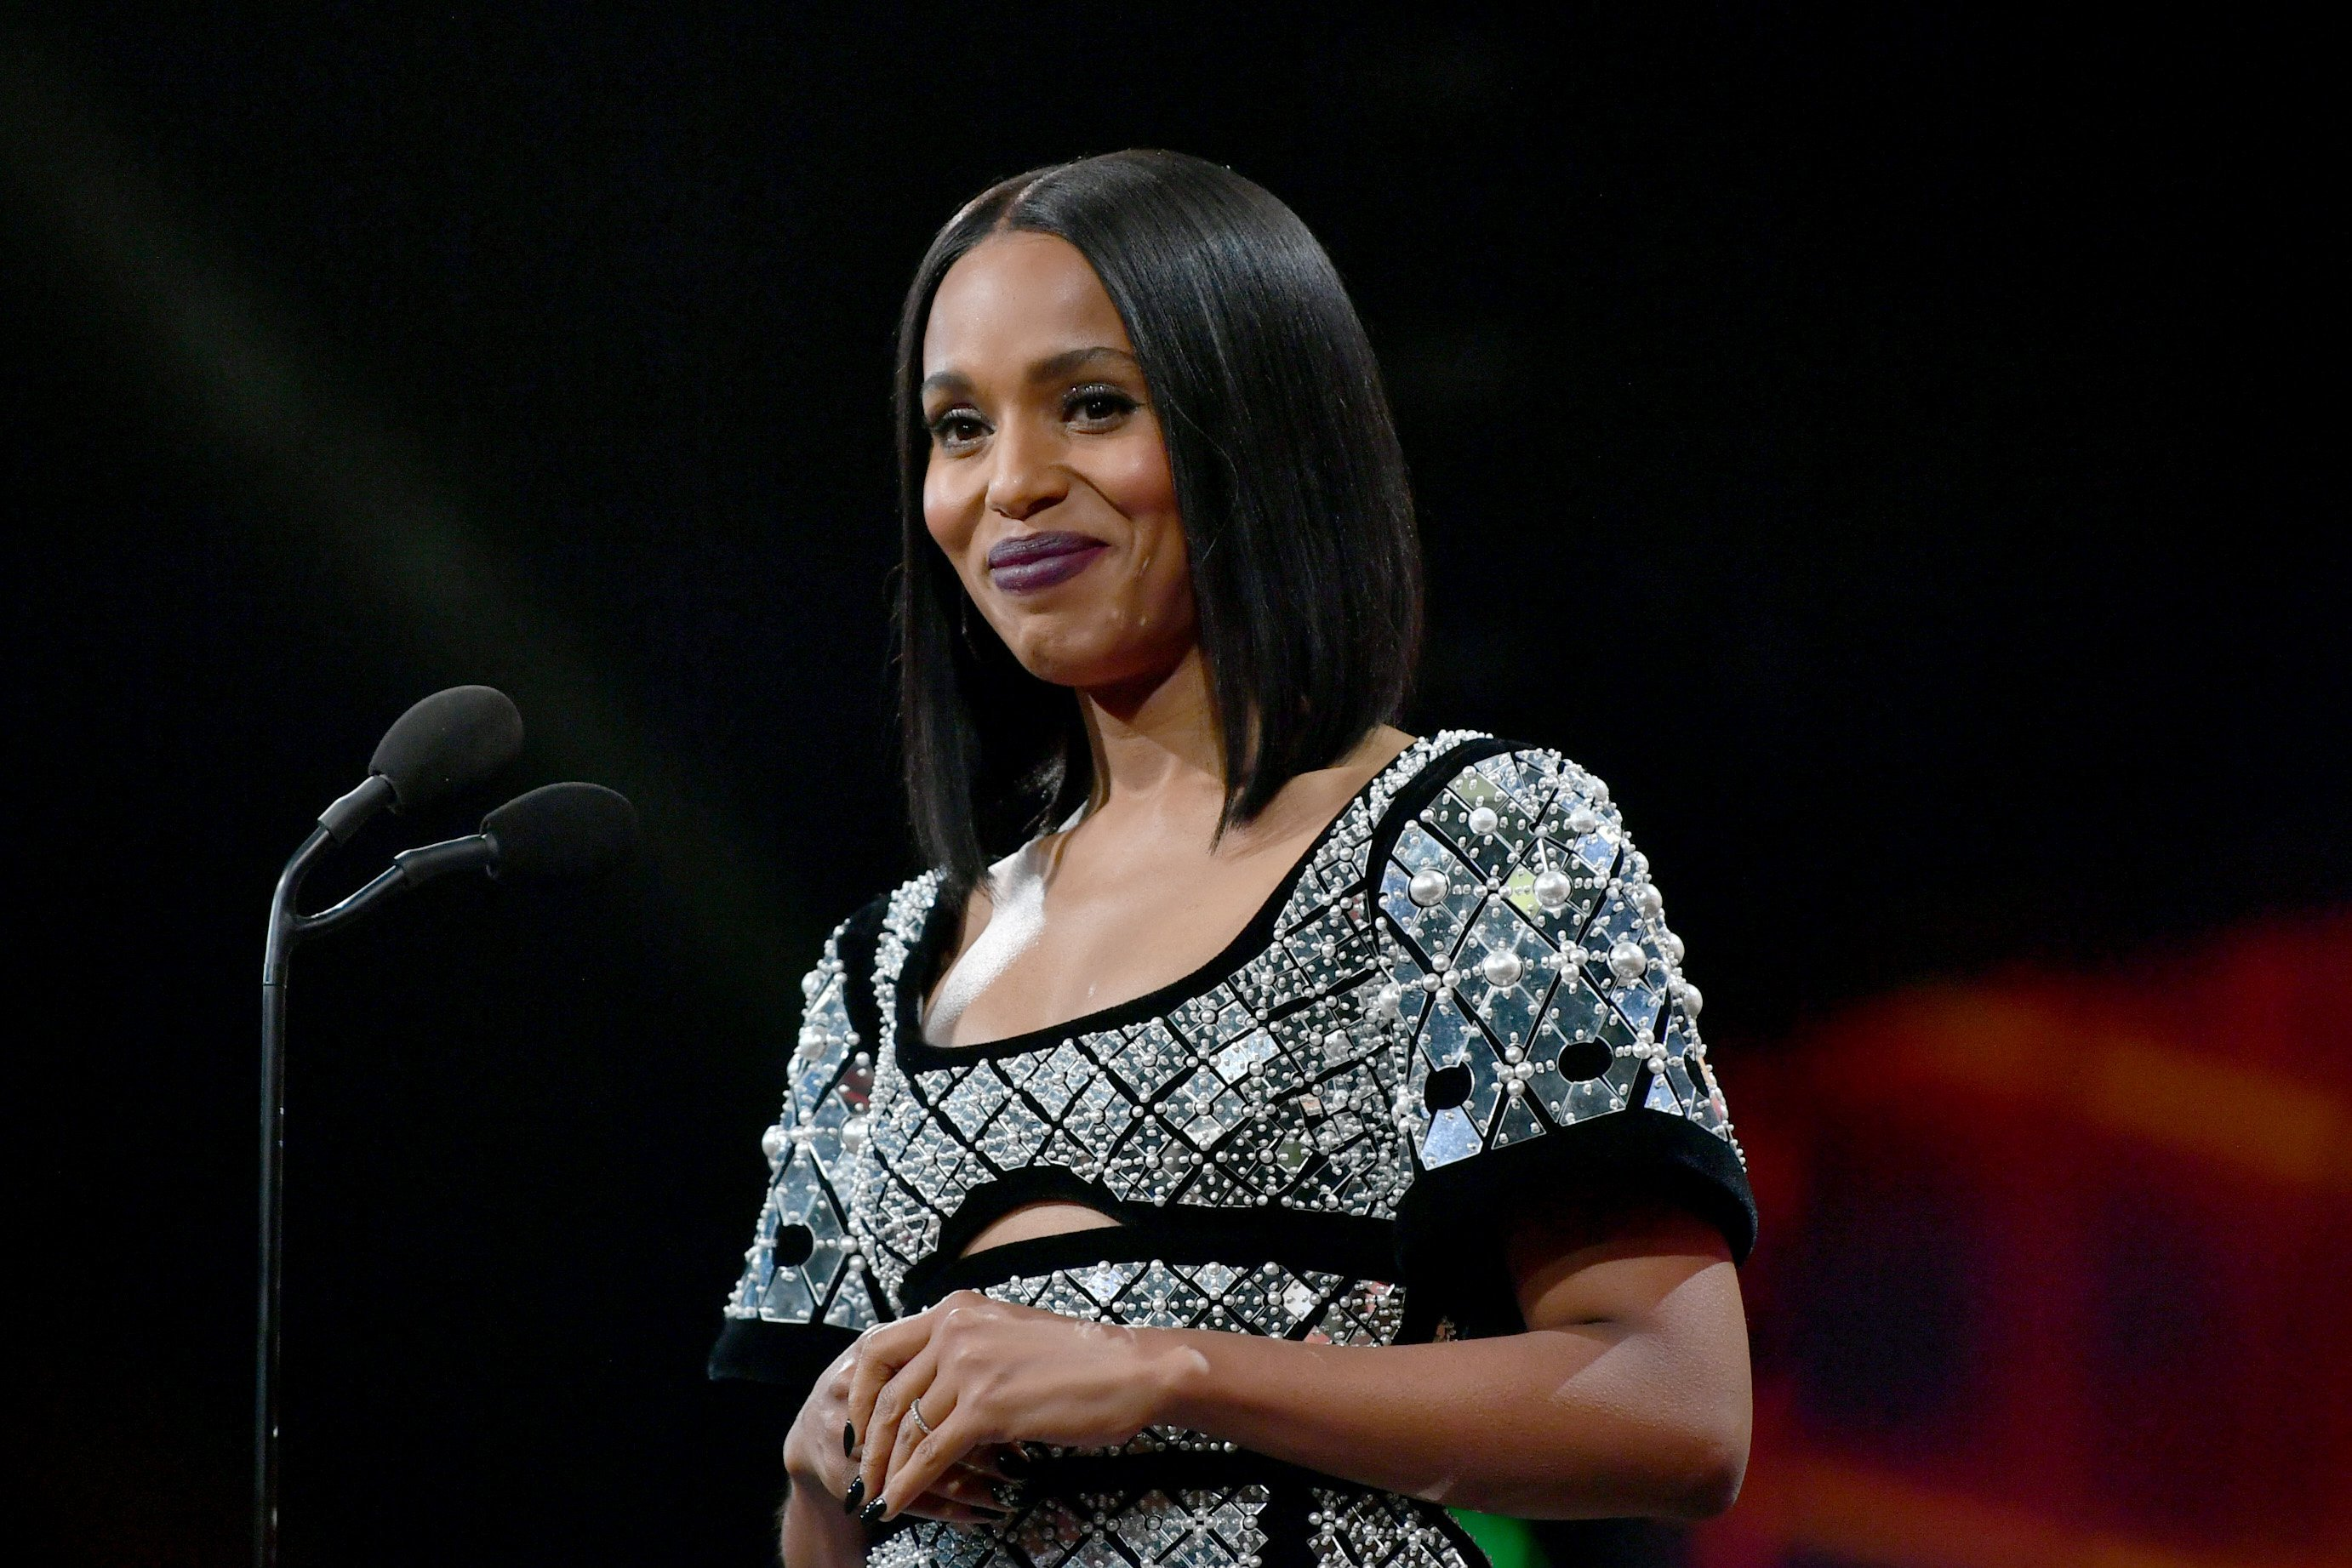 Kerry Washington at the British Academy Britannia Awards on Oct. 25, 2019 in California | Photo: Getty Images